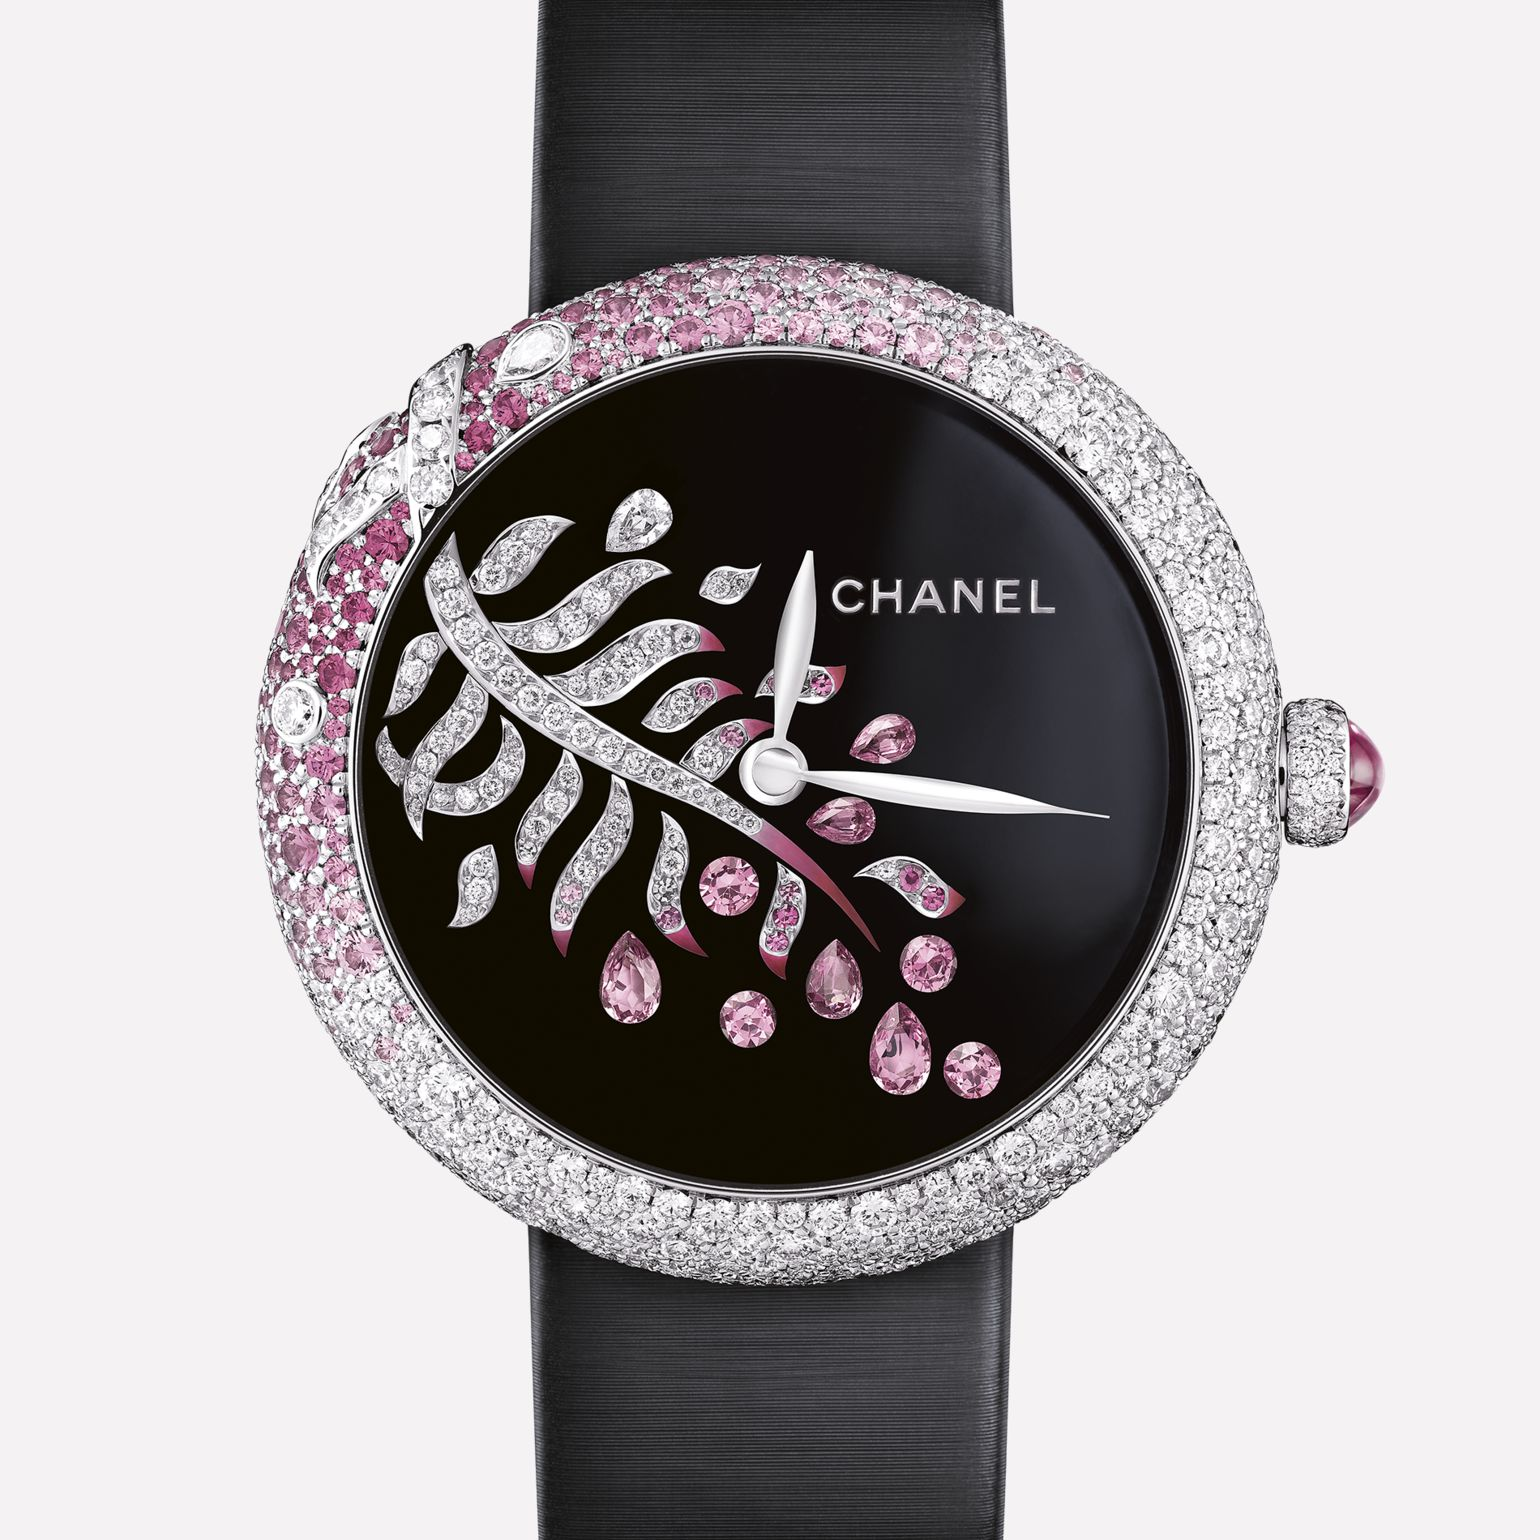 Mademoiselle Privé Watch La Plume Enchantée Jewelry - Grand Feu black enamel dial, diamonds and pink sapphires